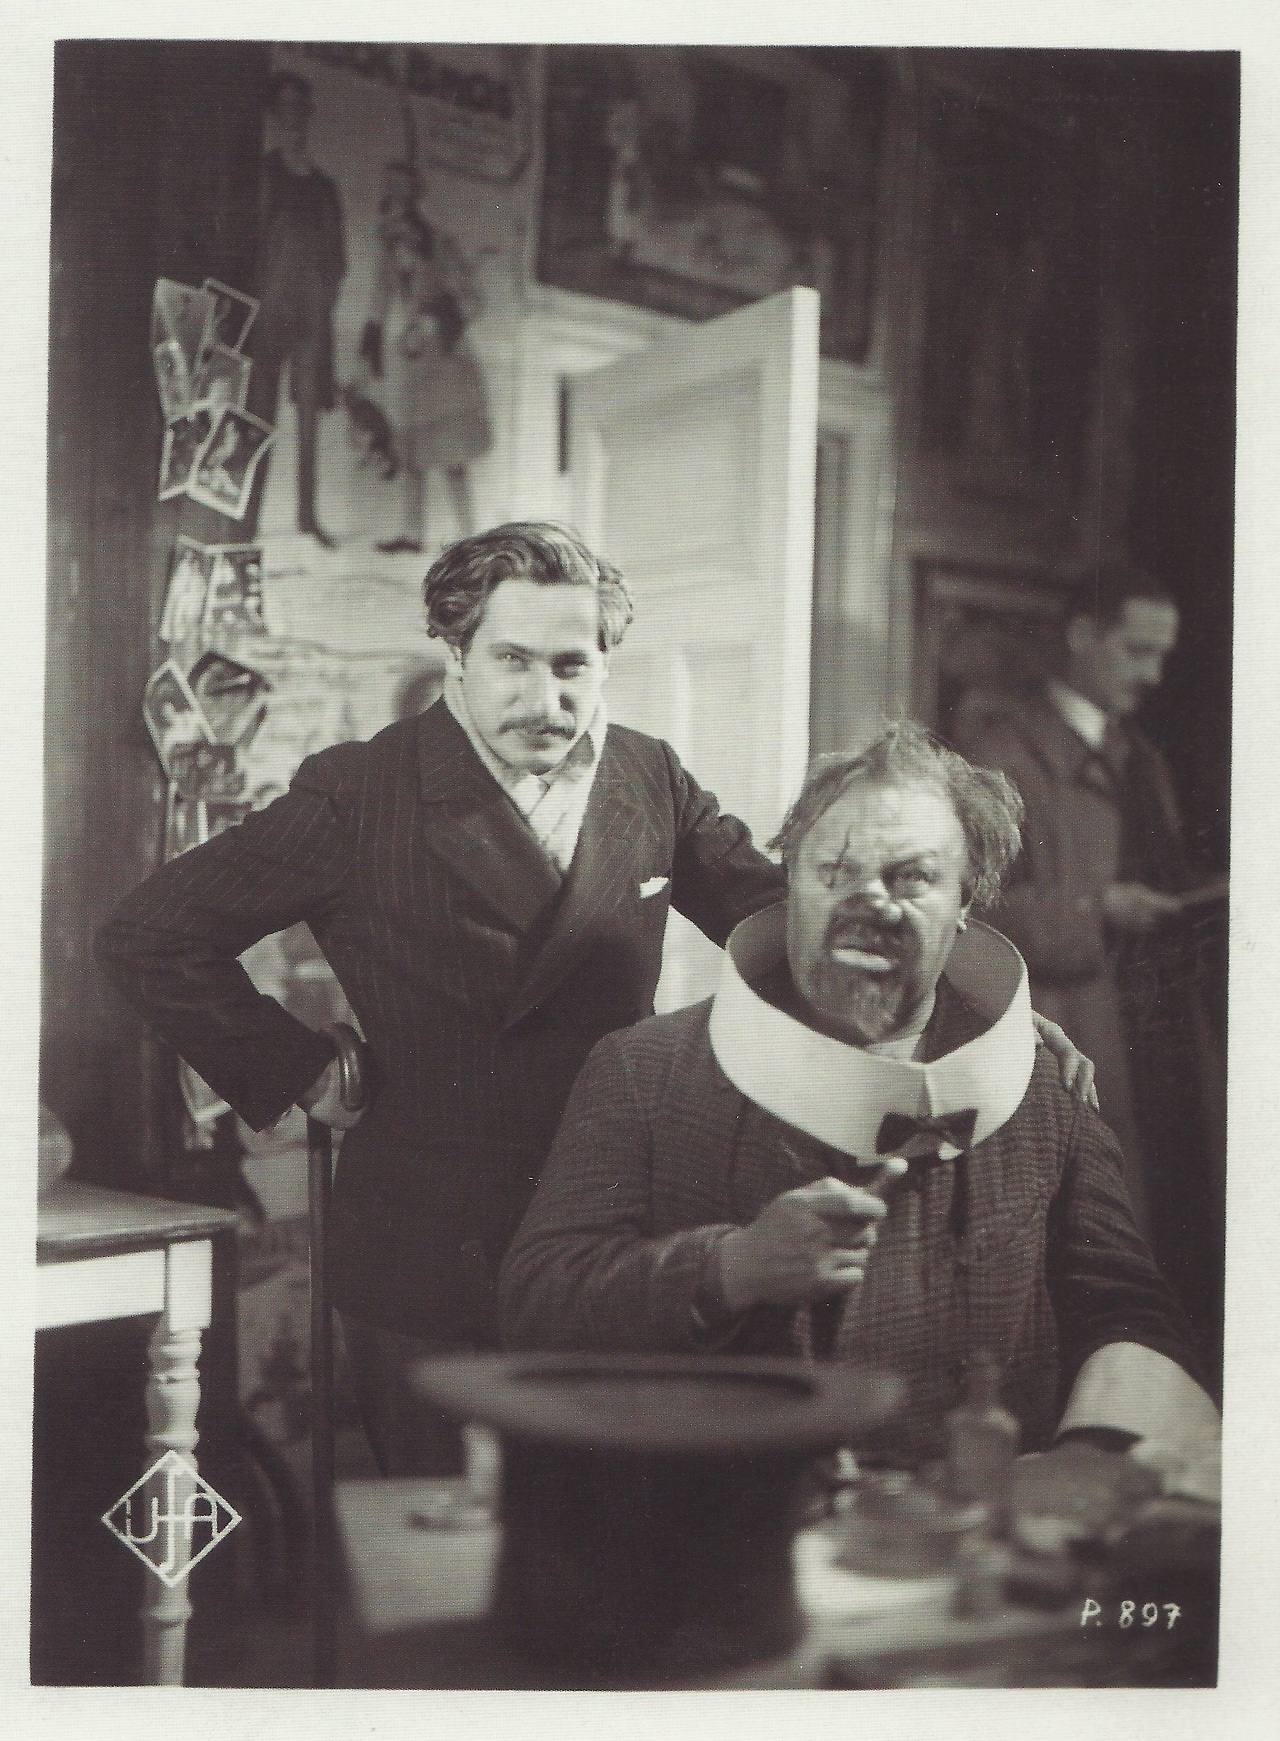 Blau Engel Josef Von Sternberg And Emil Jannings On Set Of Der Blaue Engel